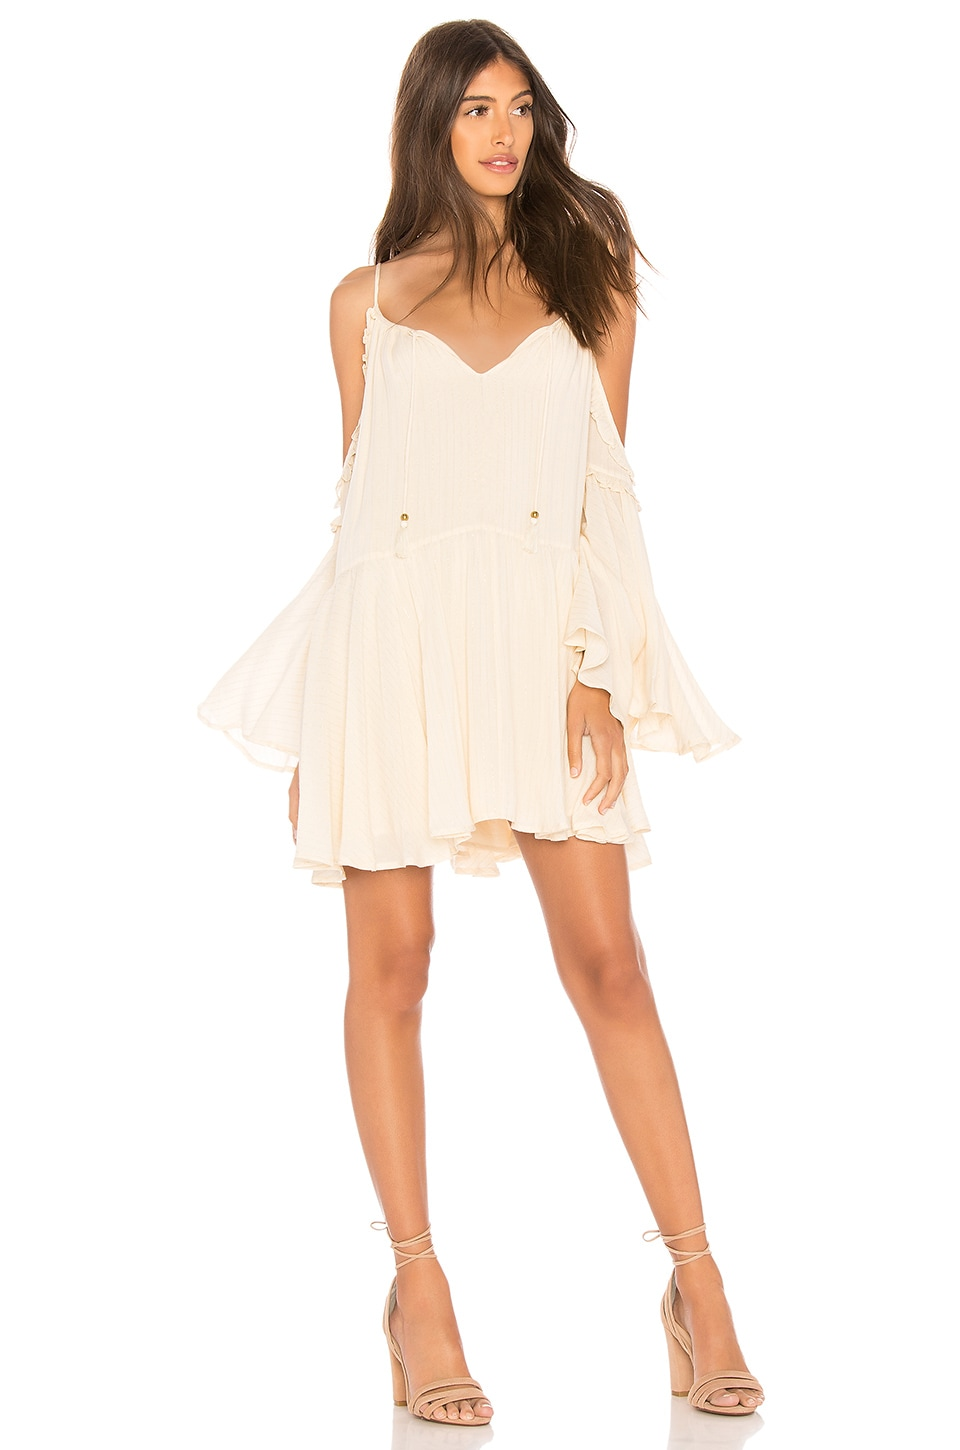 Spell & The Gypsy Collective Florence Mini Dress in Creme Brulee